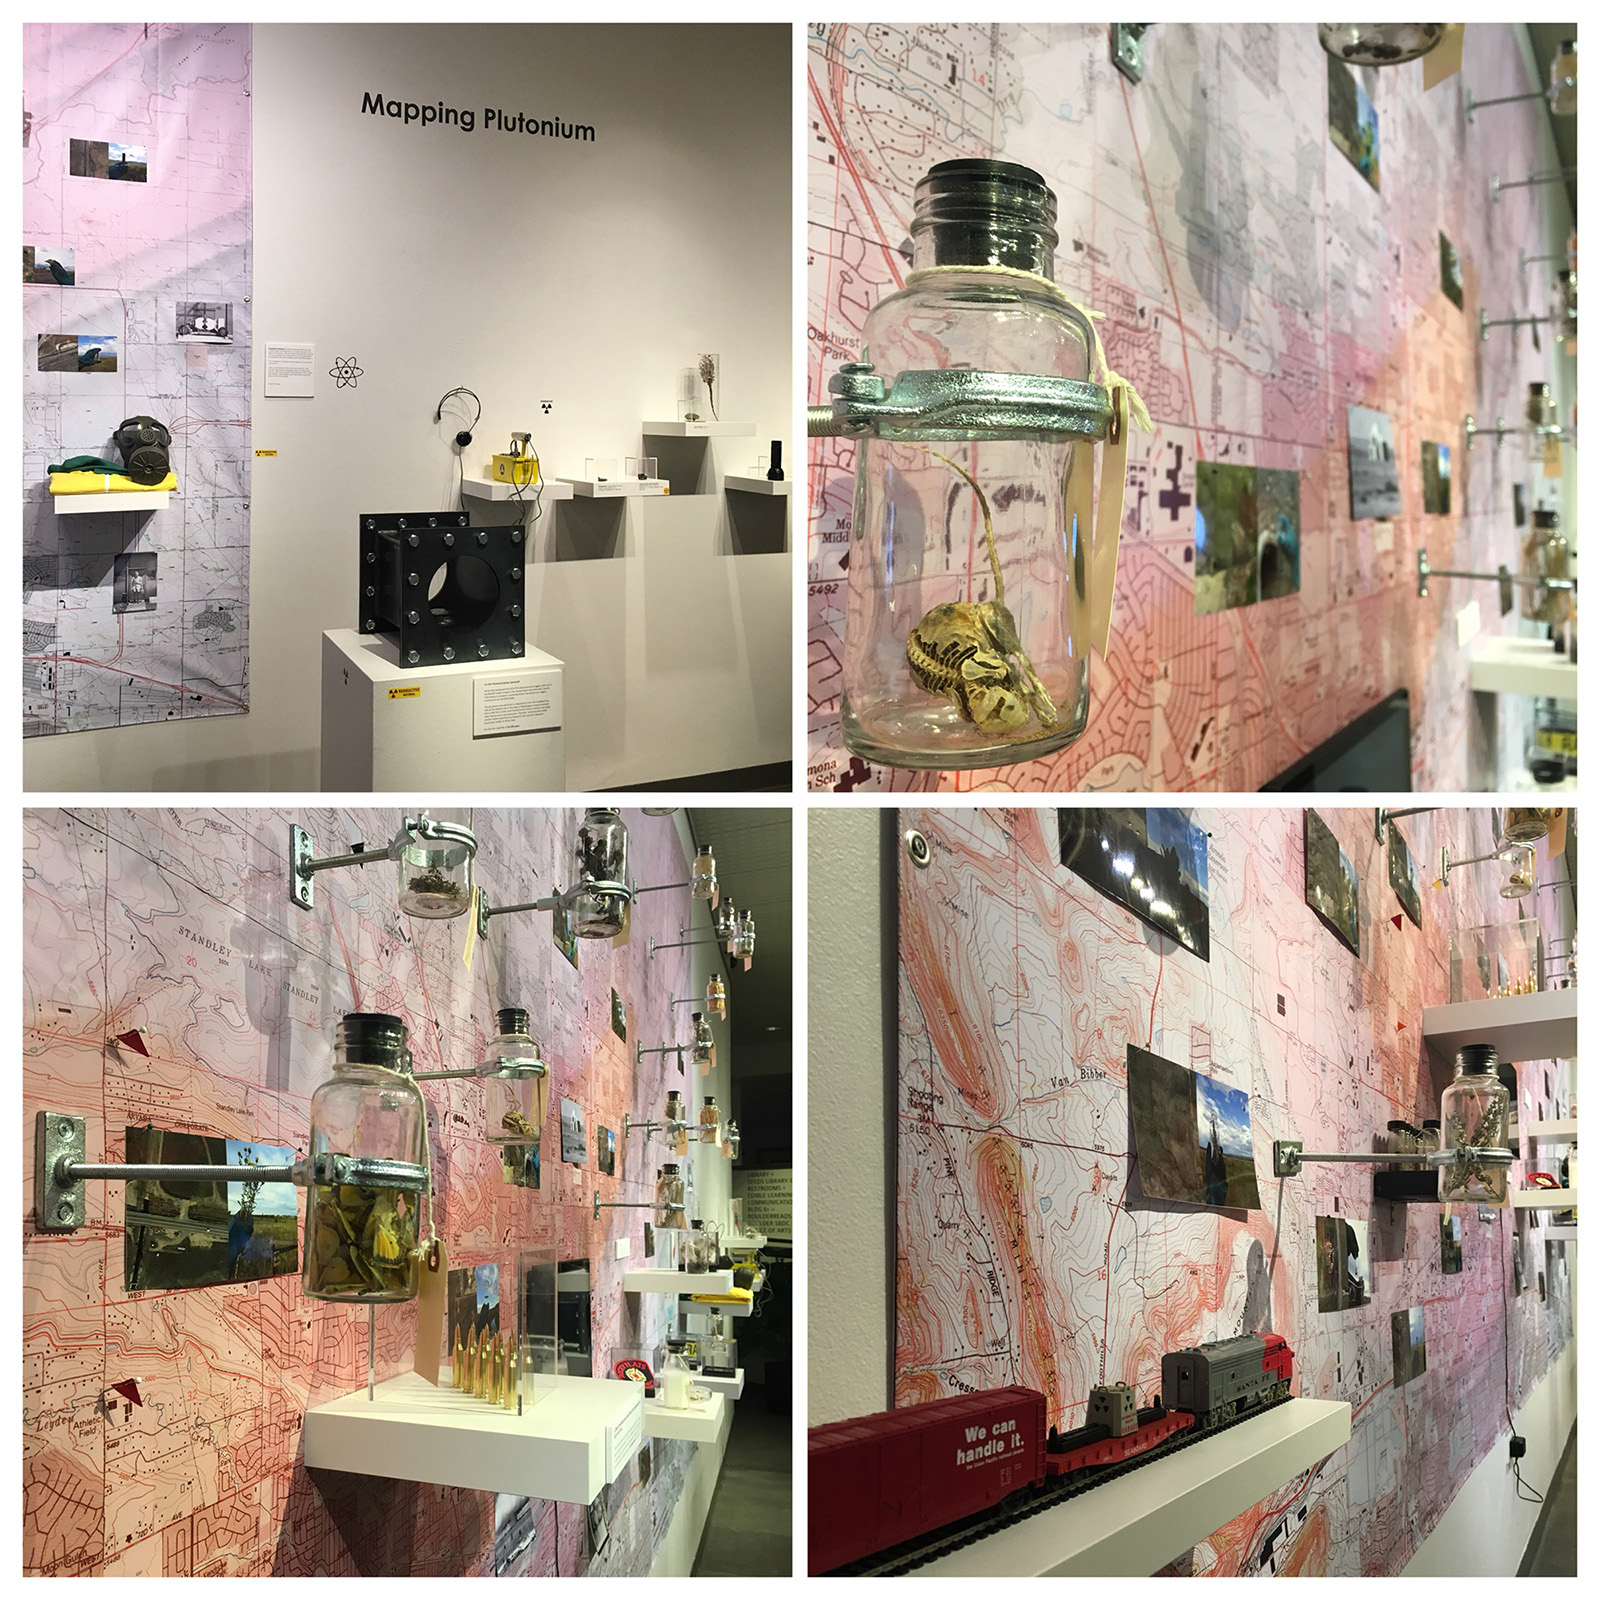 Grid of four images showing various details of a sprawling installation with a wall map and scientific instruments.